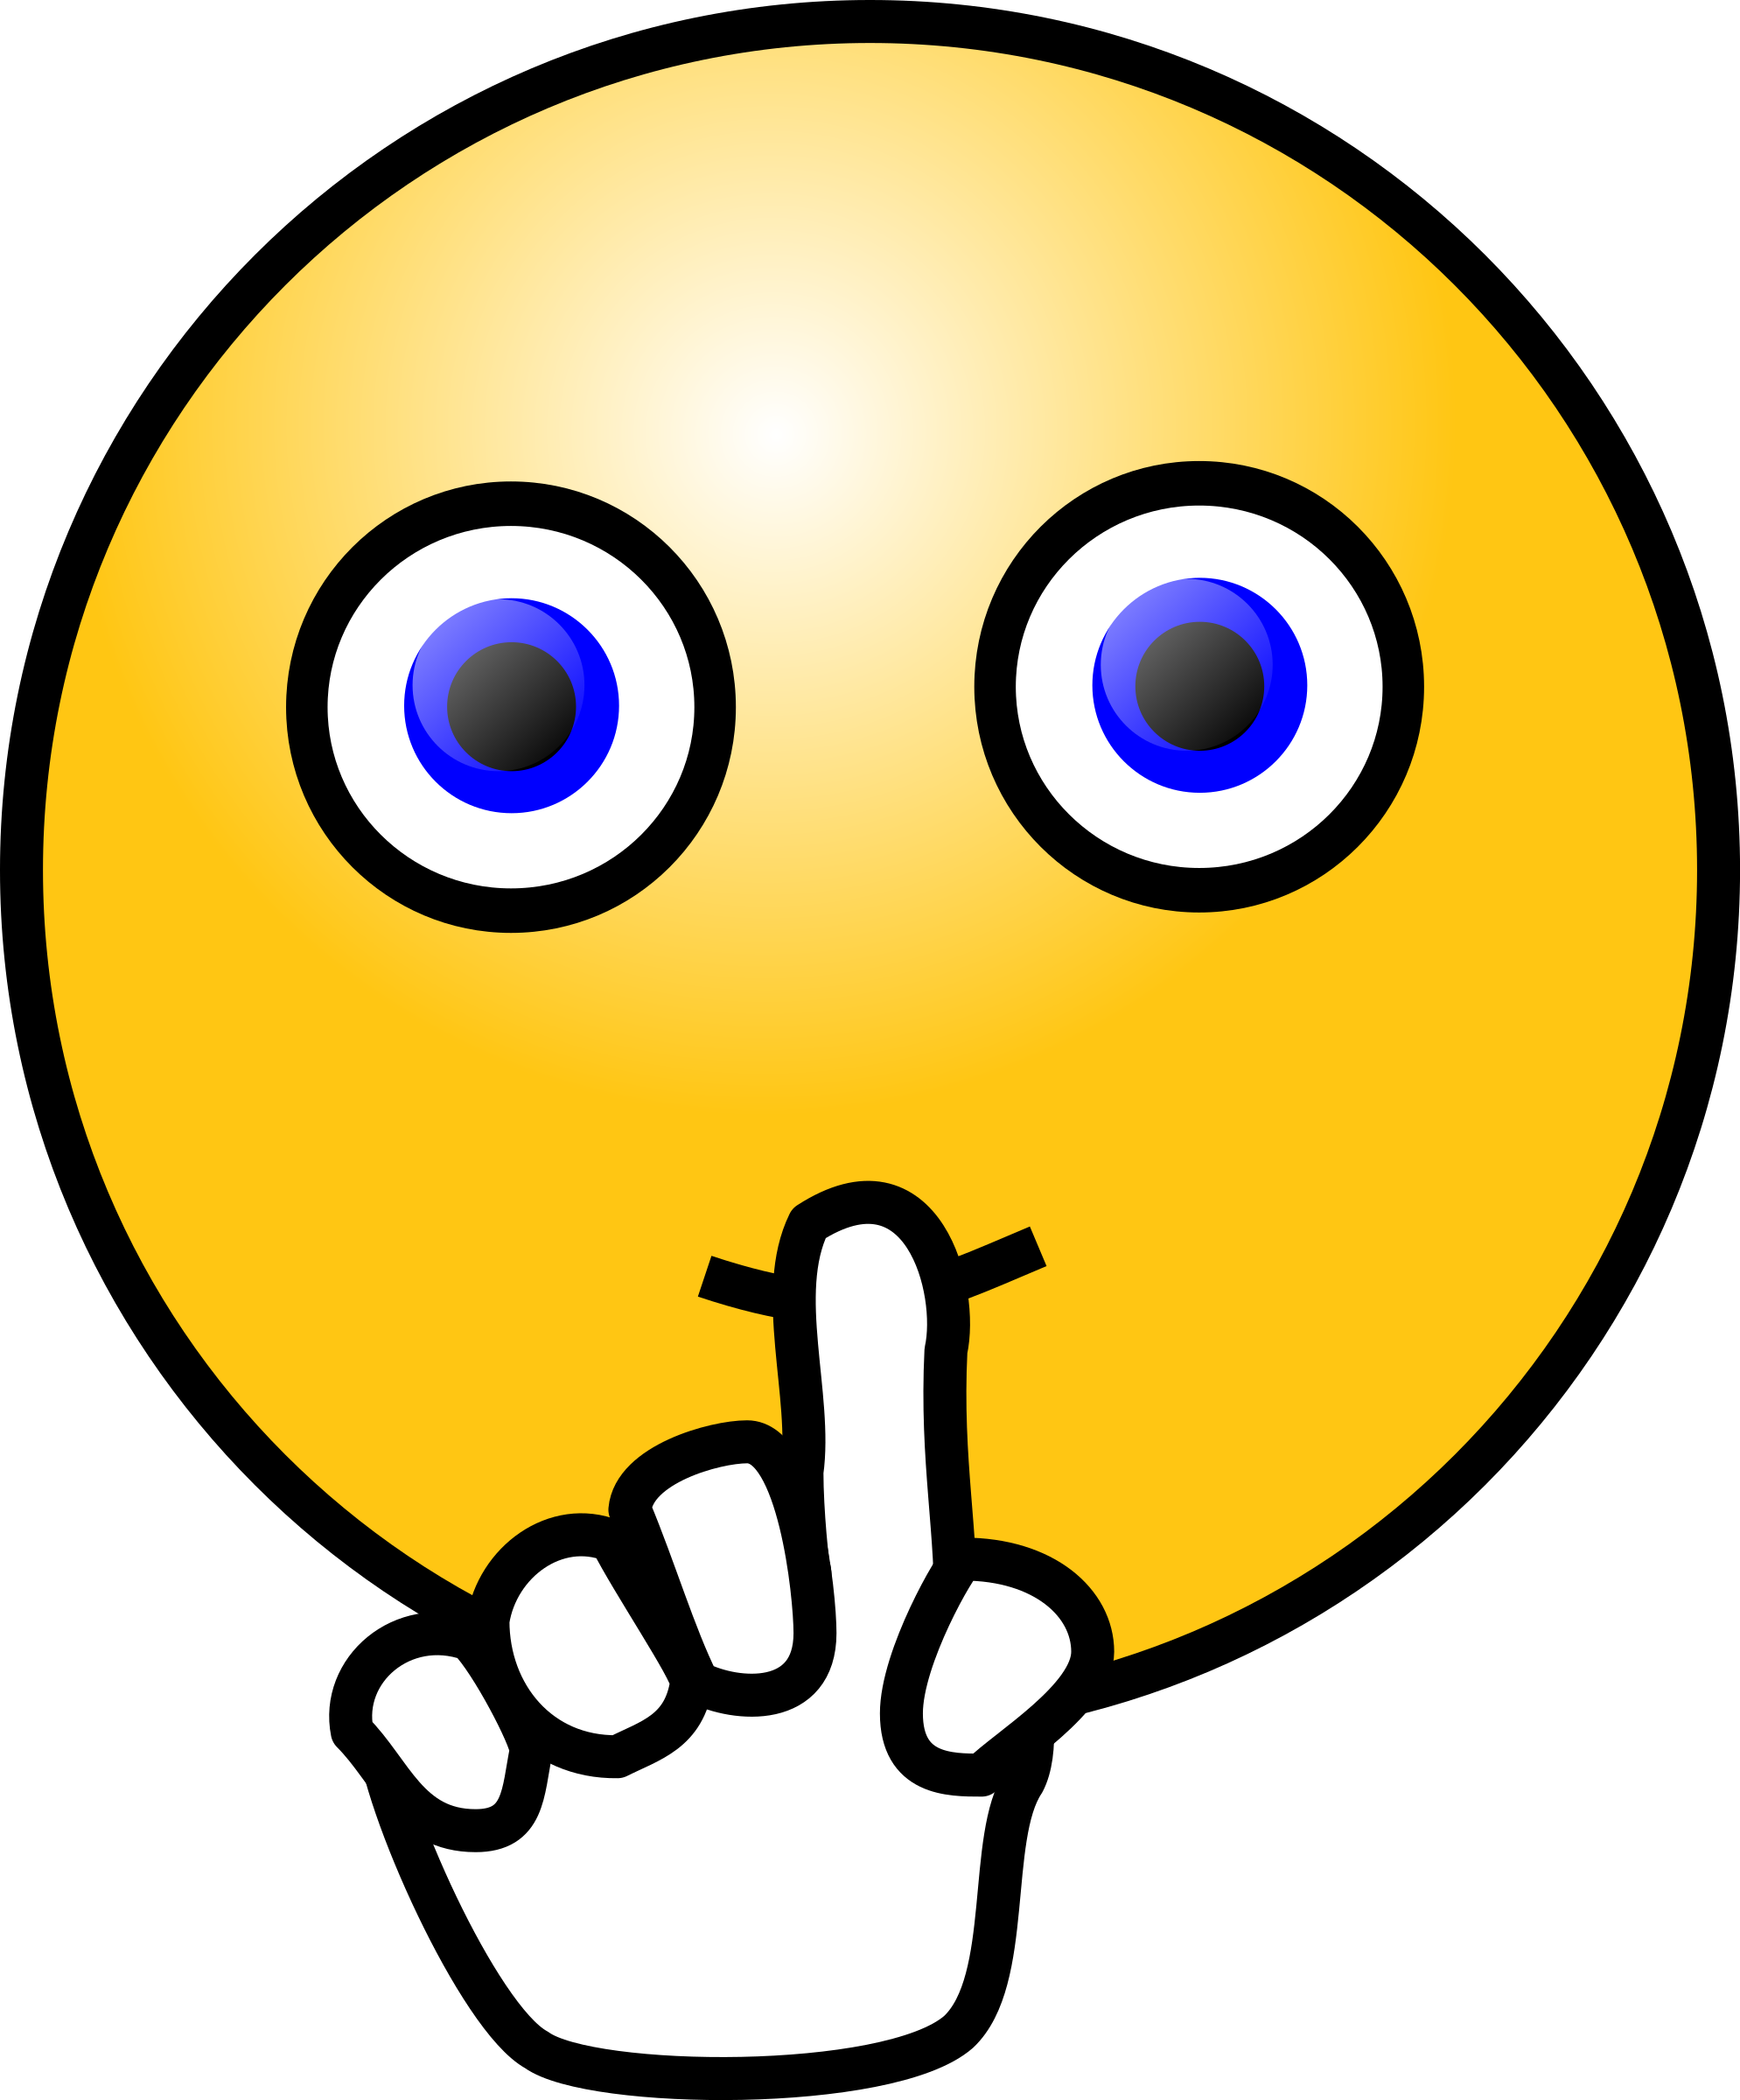 Collection of Silence clipart.